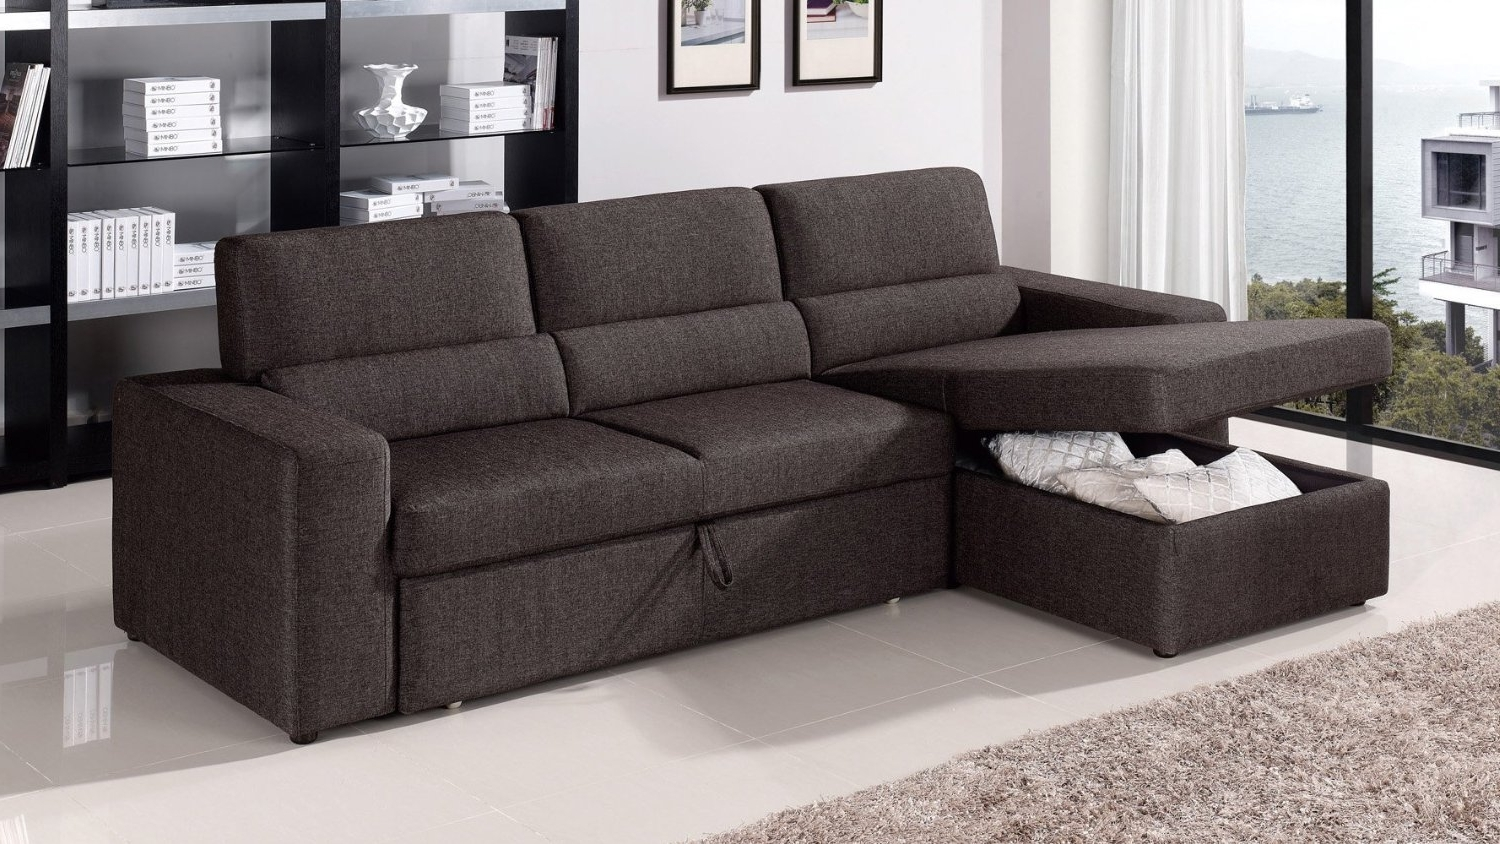 Sectional Sleeper Sofas With Ottoman Pertaining To Newest Sectional Sleeper Sofa Queen Leather Sectional Sleeper Sofa Fabric (View 12 of 15)